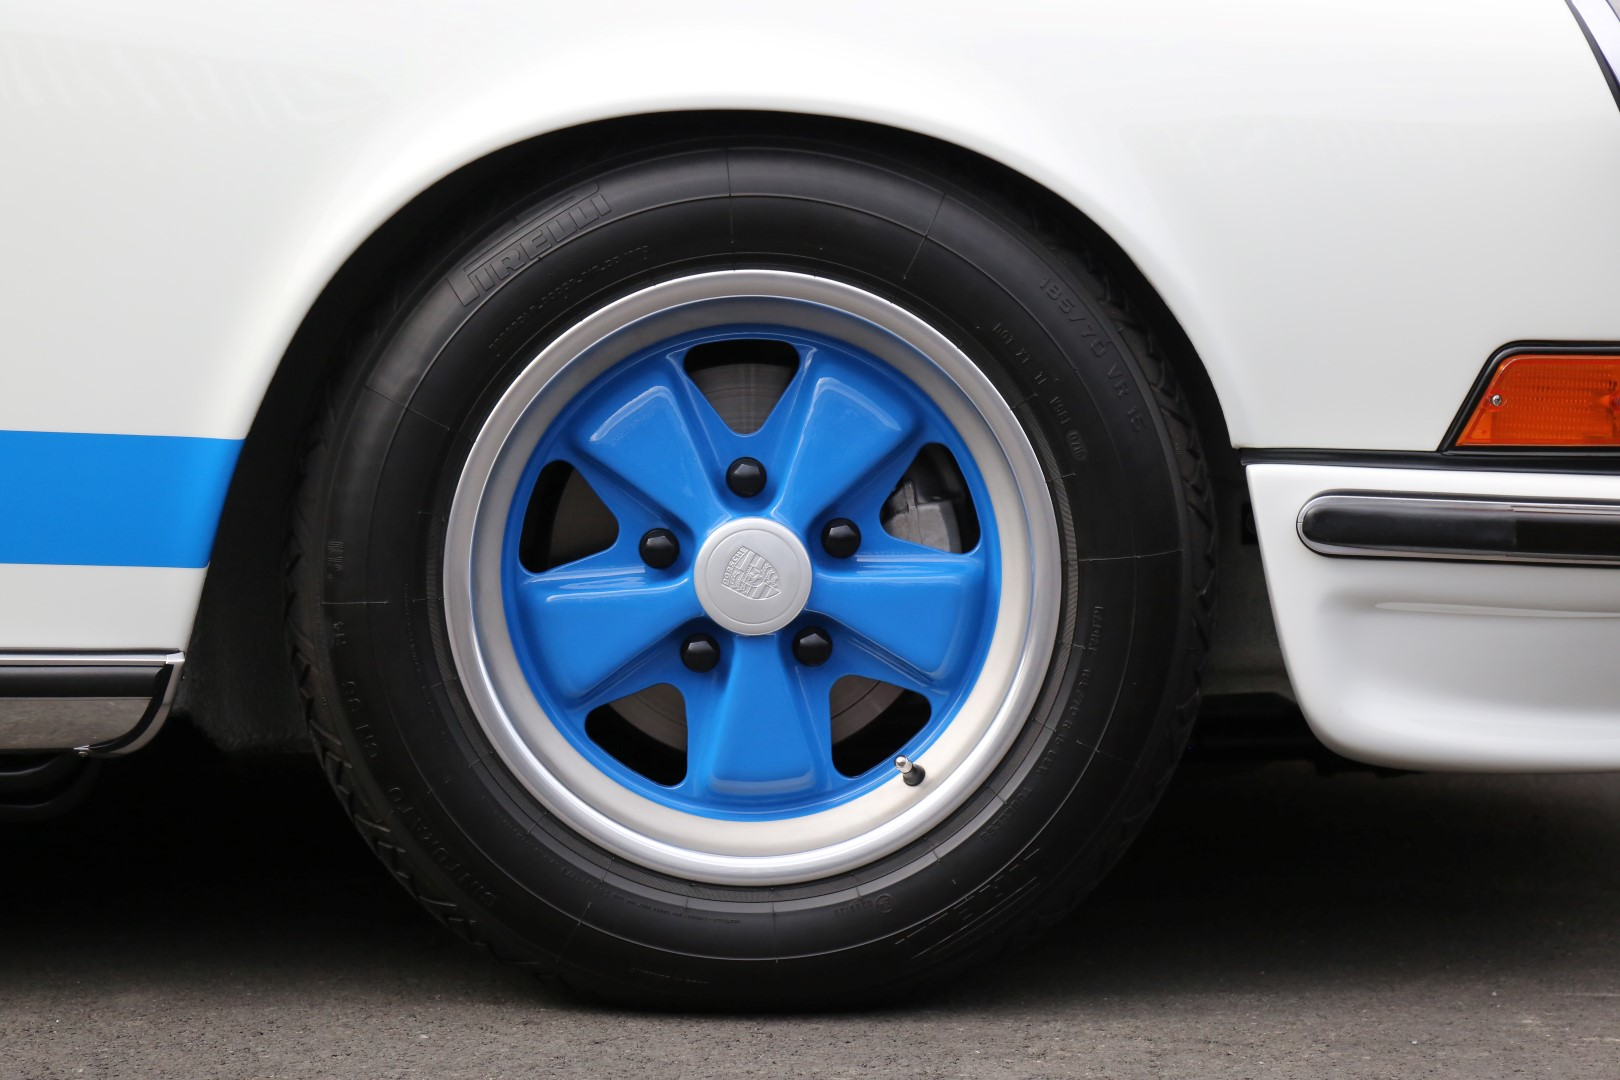 Porsche-911-Carrera-RS-2.7-1973-for-sale-6